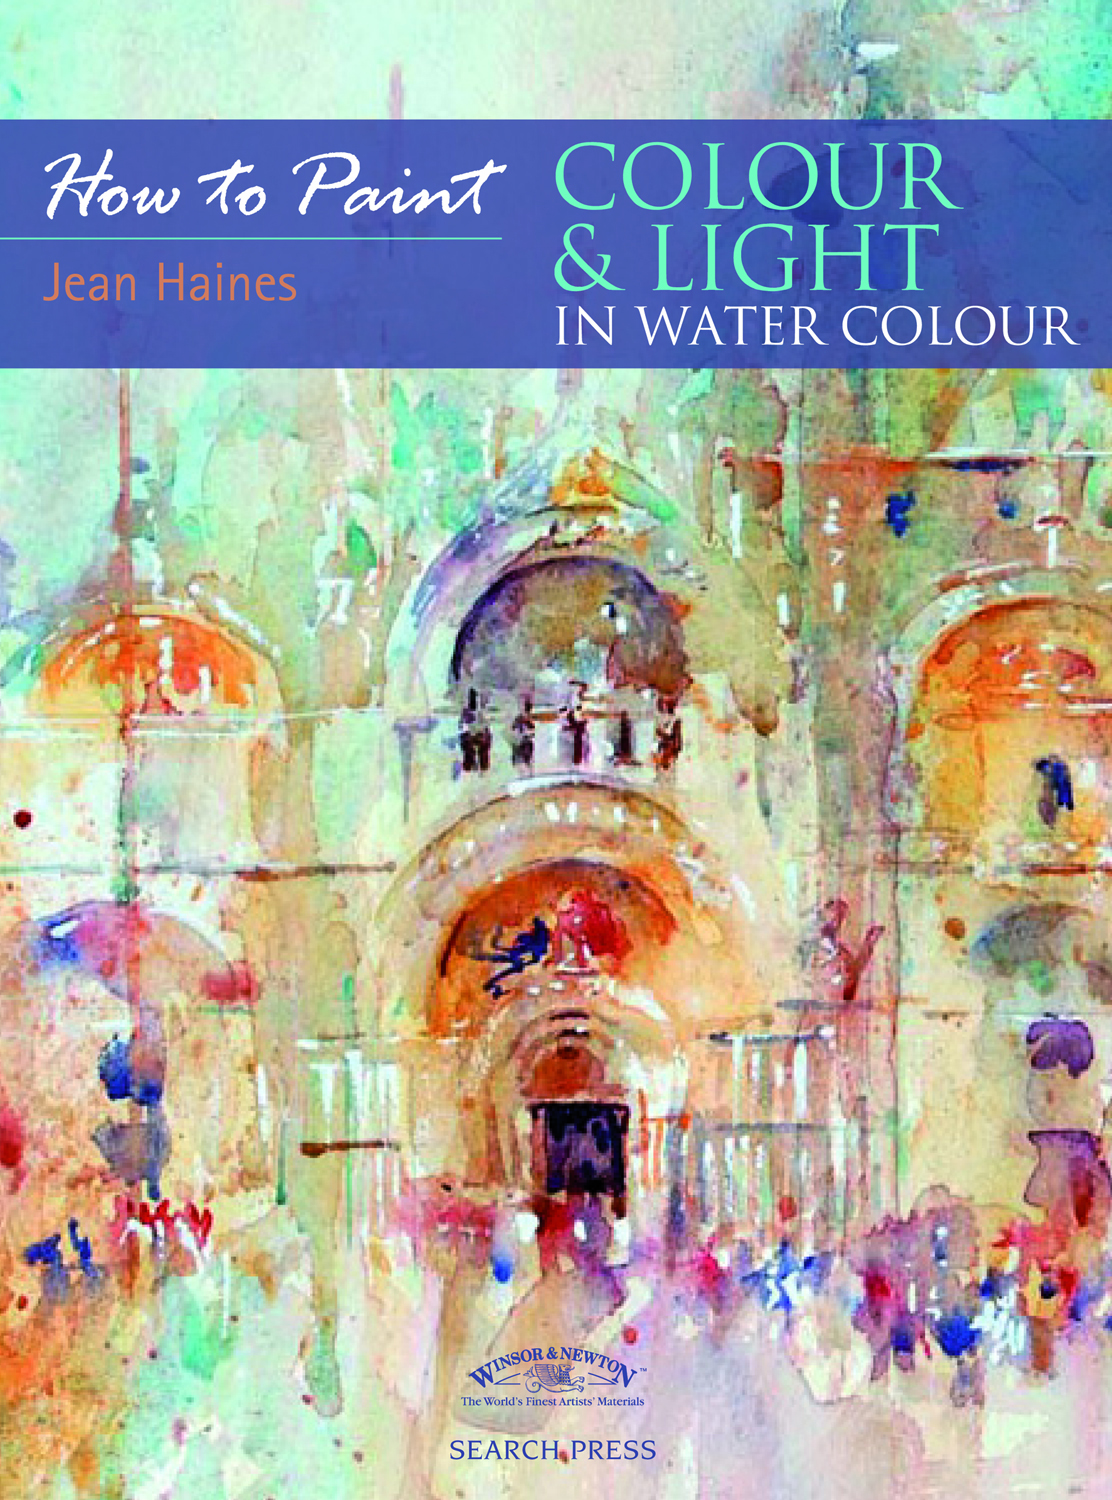 Watercolor books by search press - The Original Version Of How To Paint Colour And Light